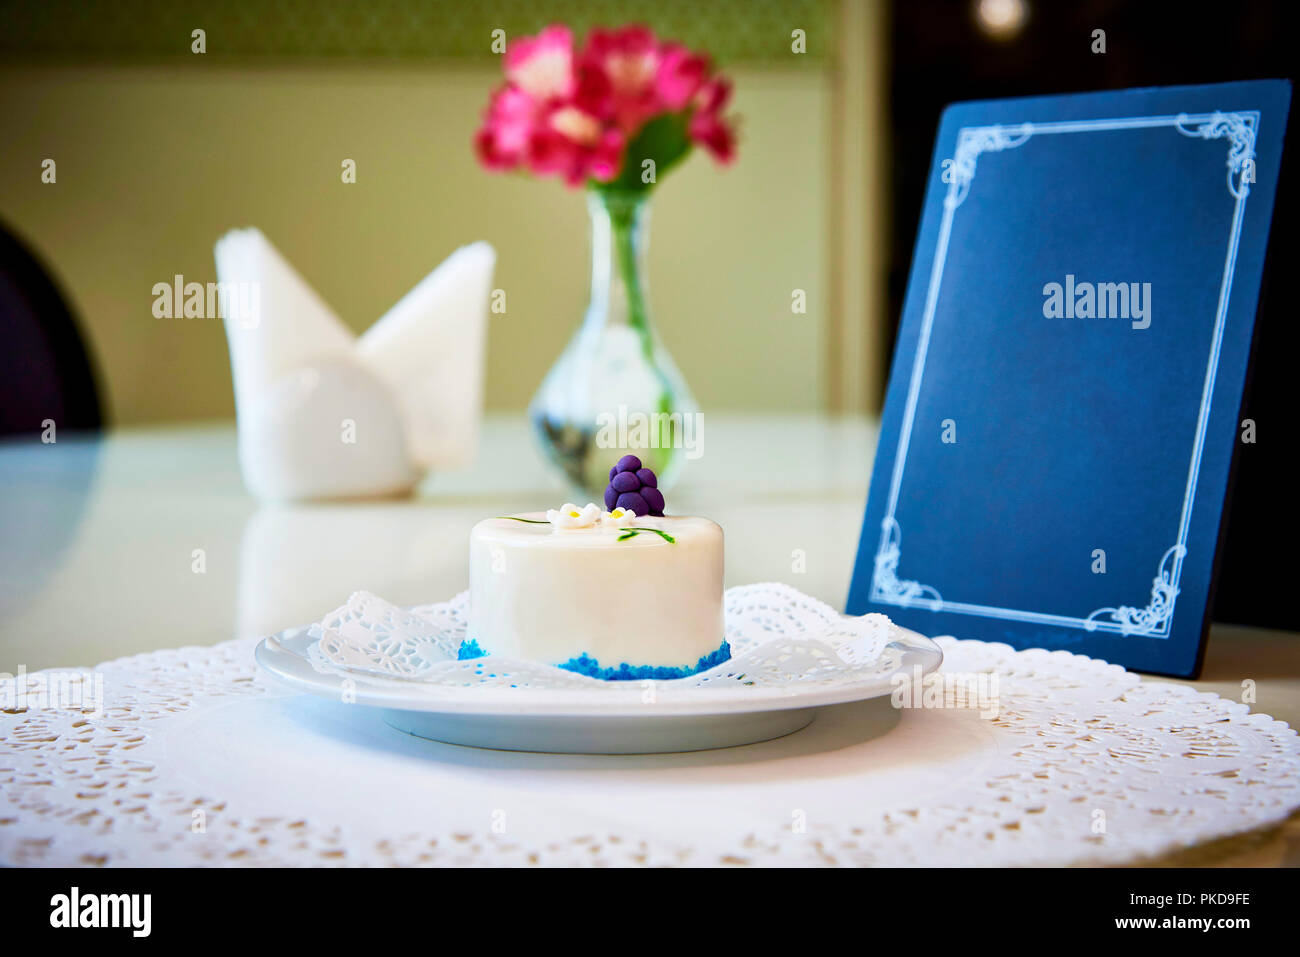 a confectionery product on a white plate with lace stands on a table